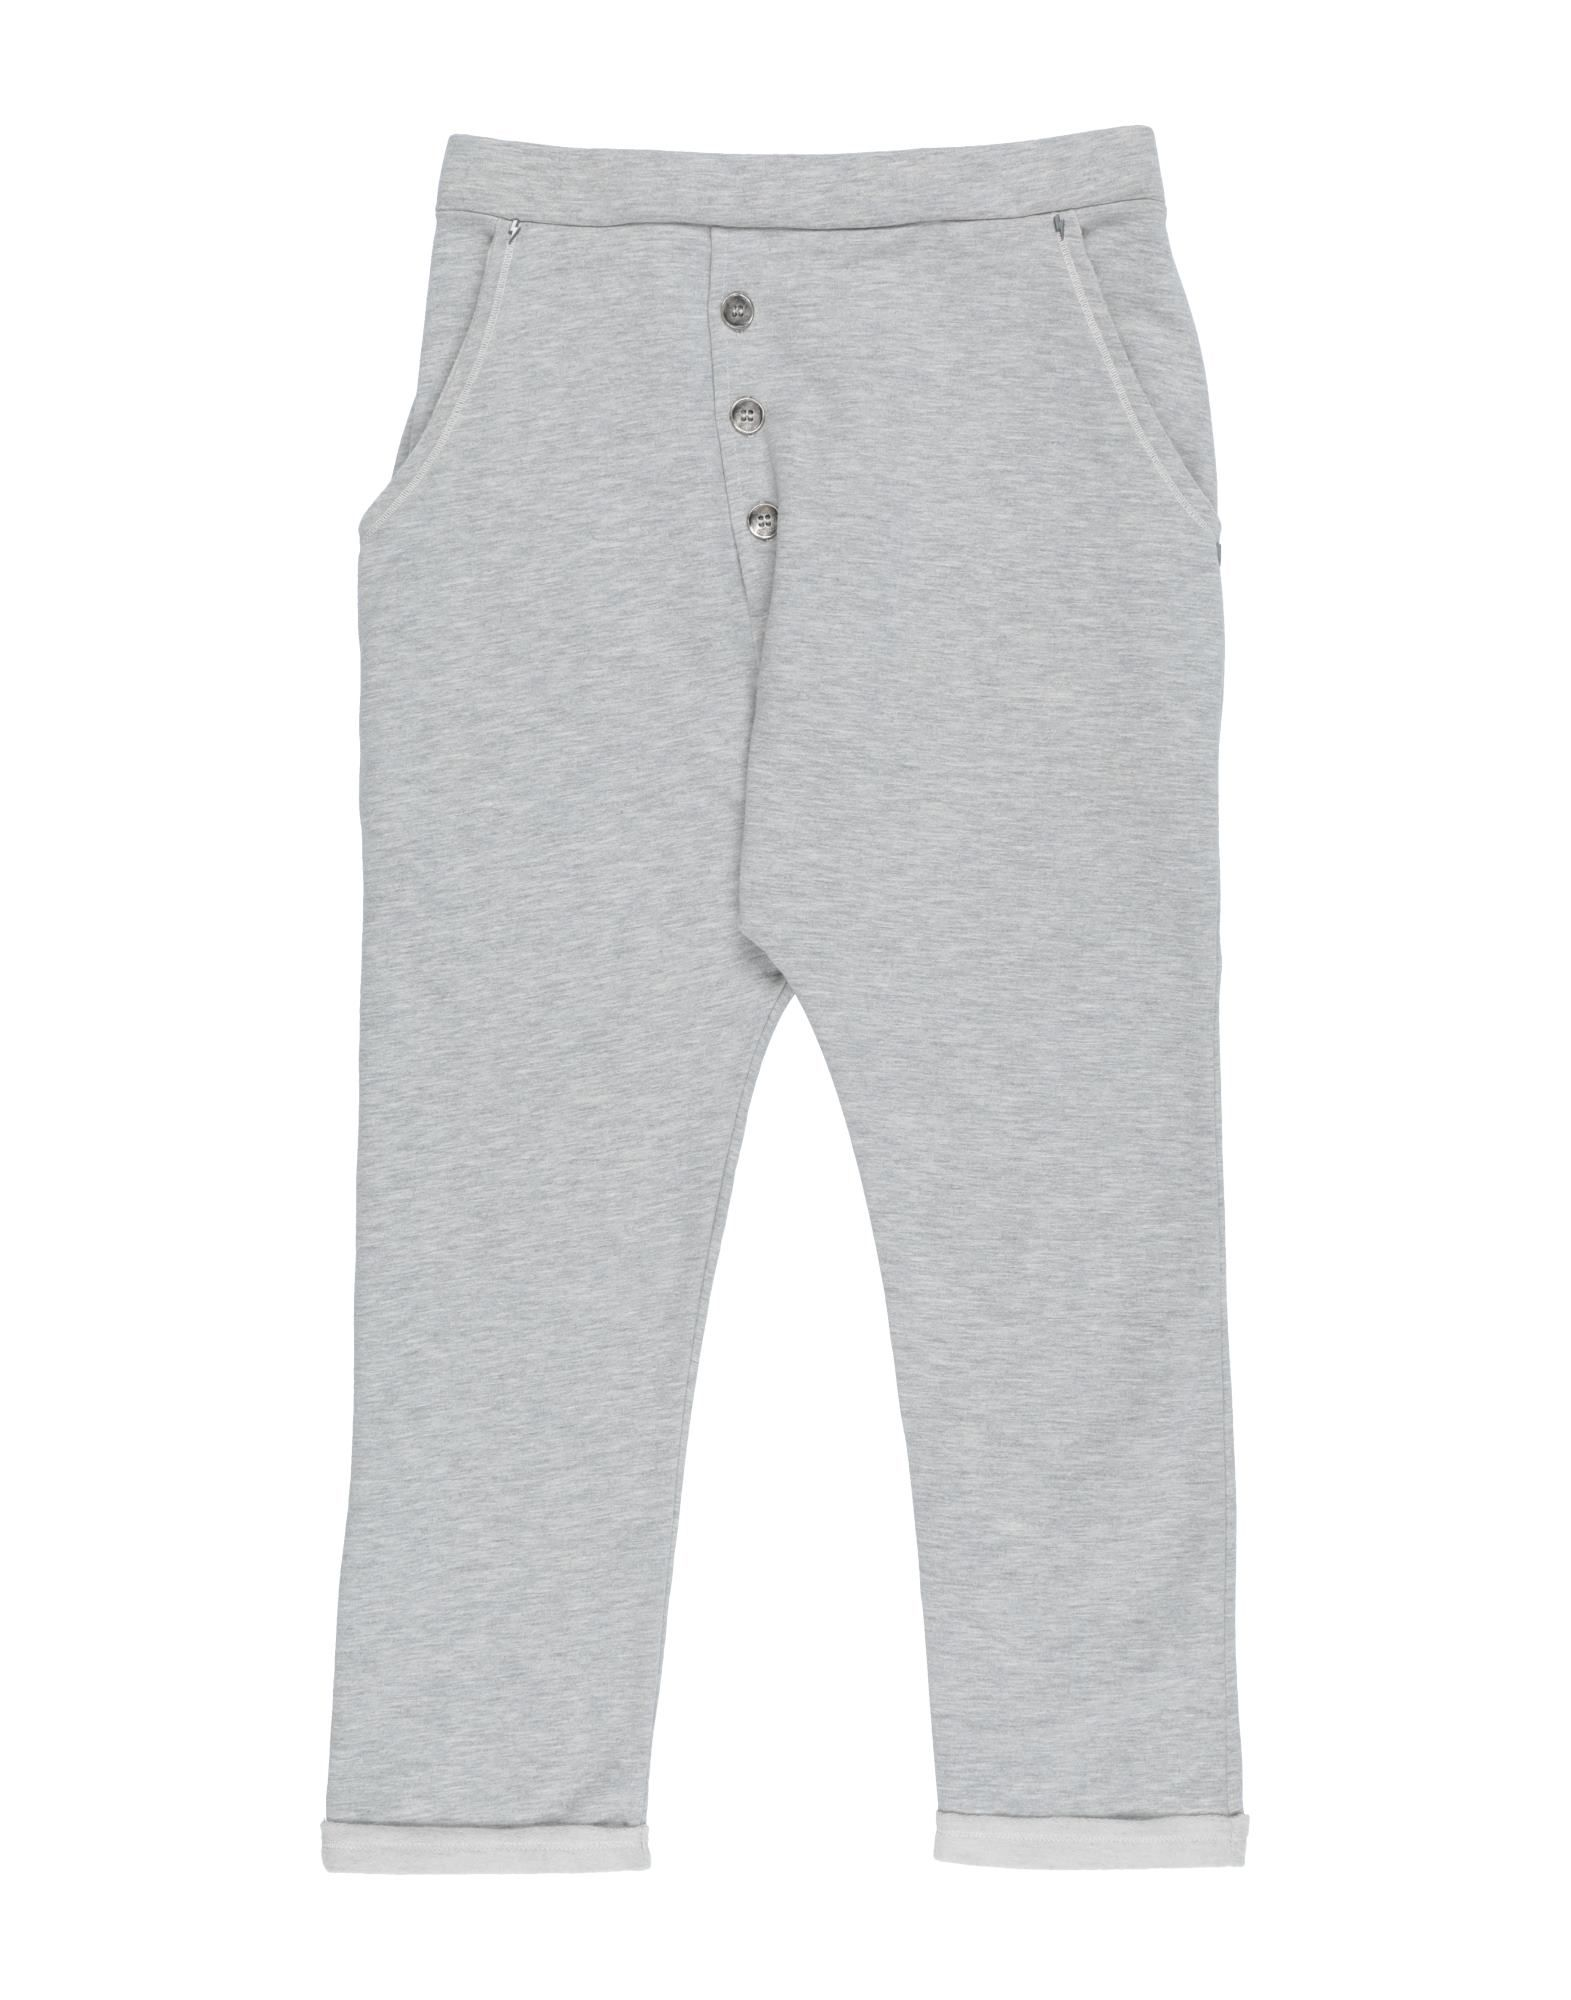 Mapero Kids' Casual Pants In Gray